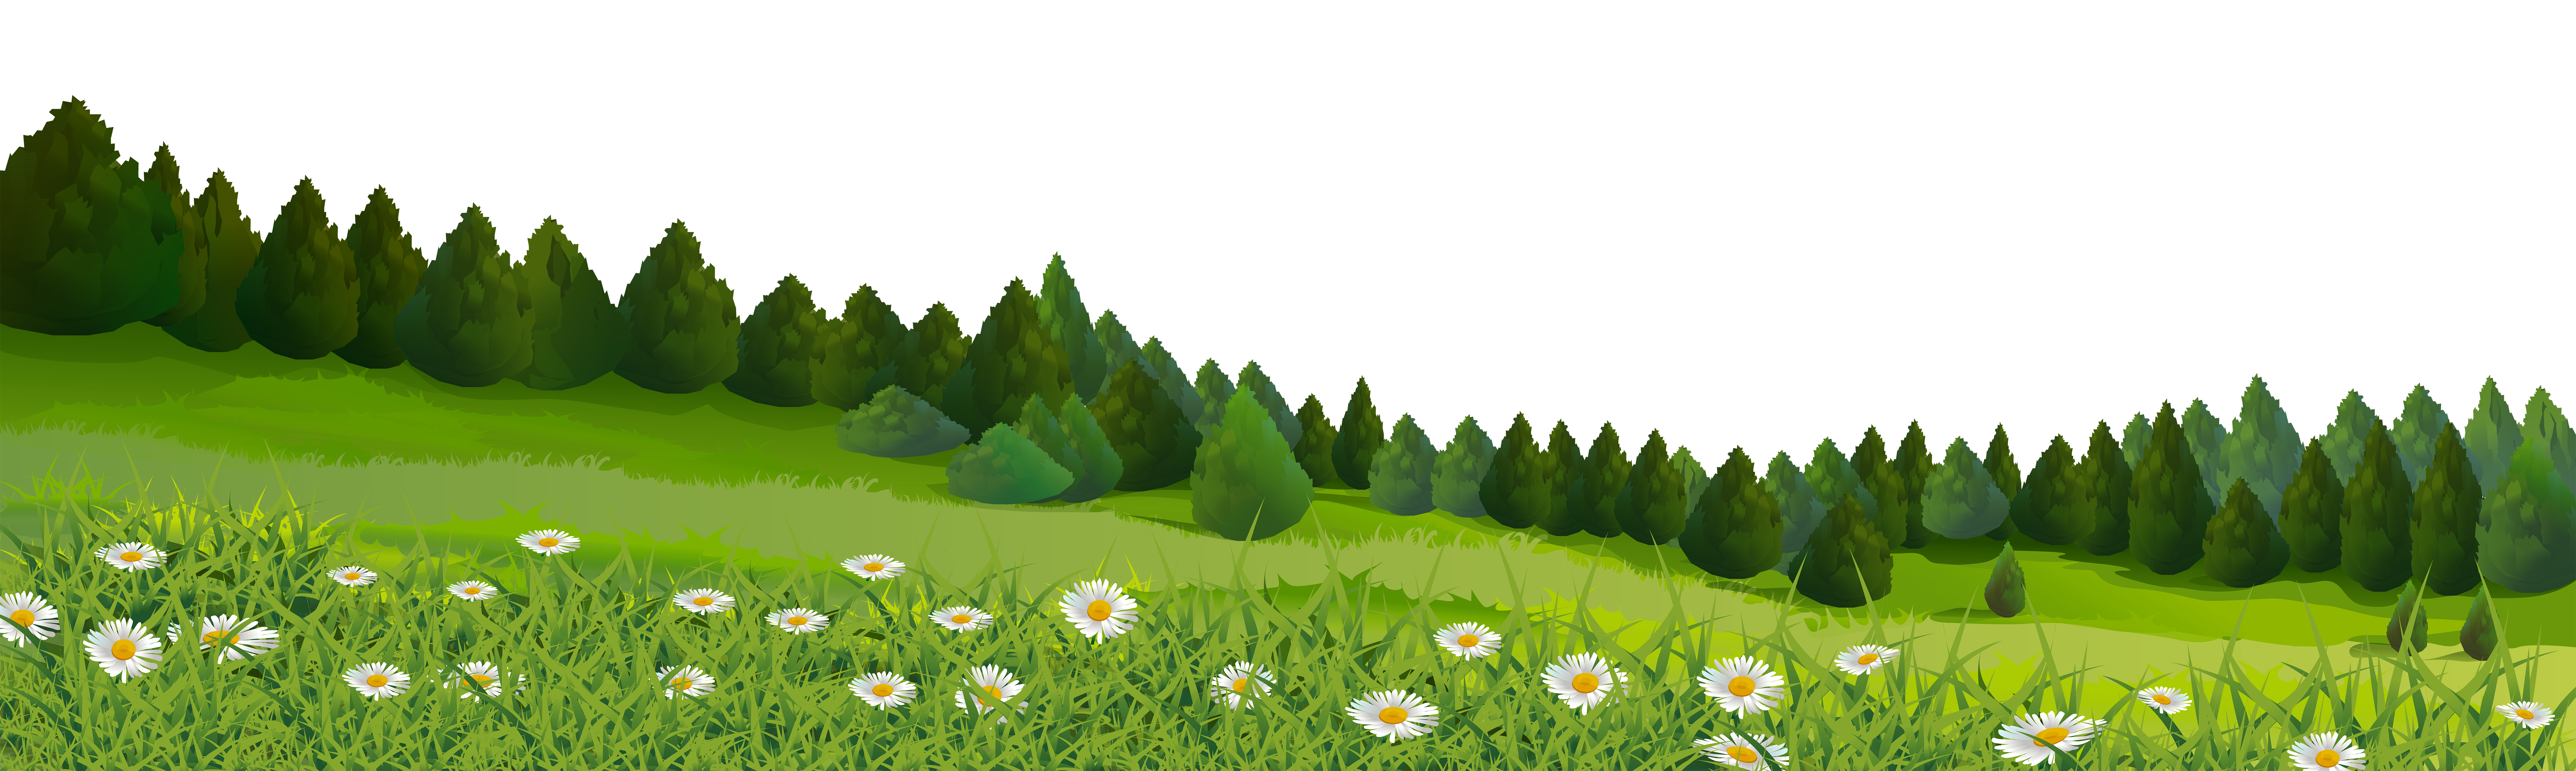 Png grass. Trees and clip art